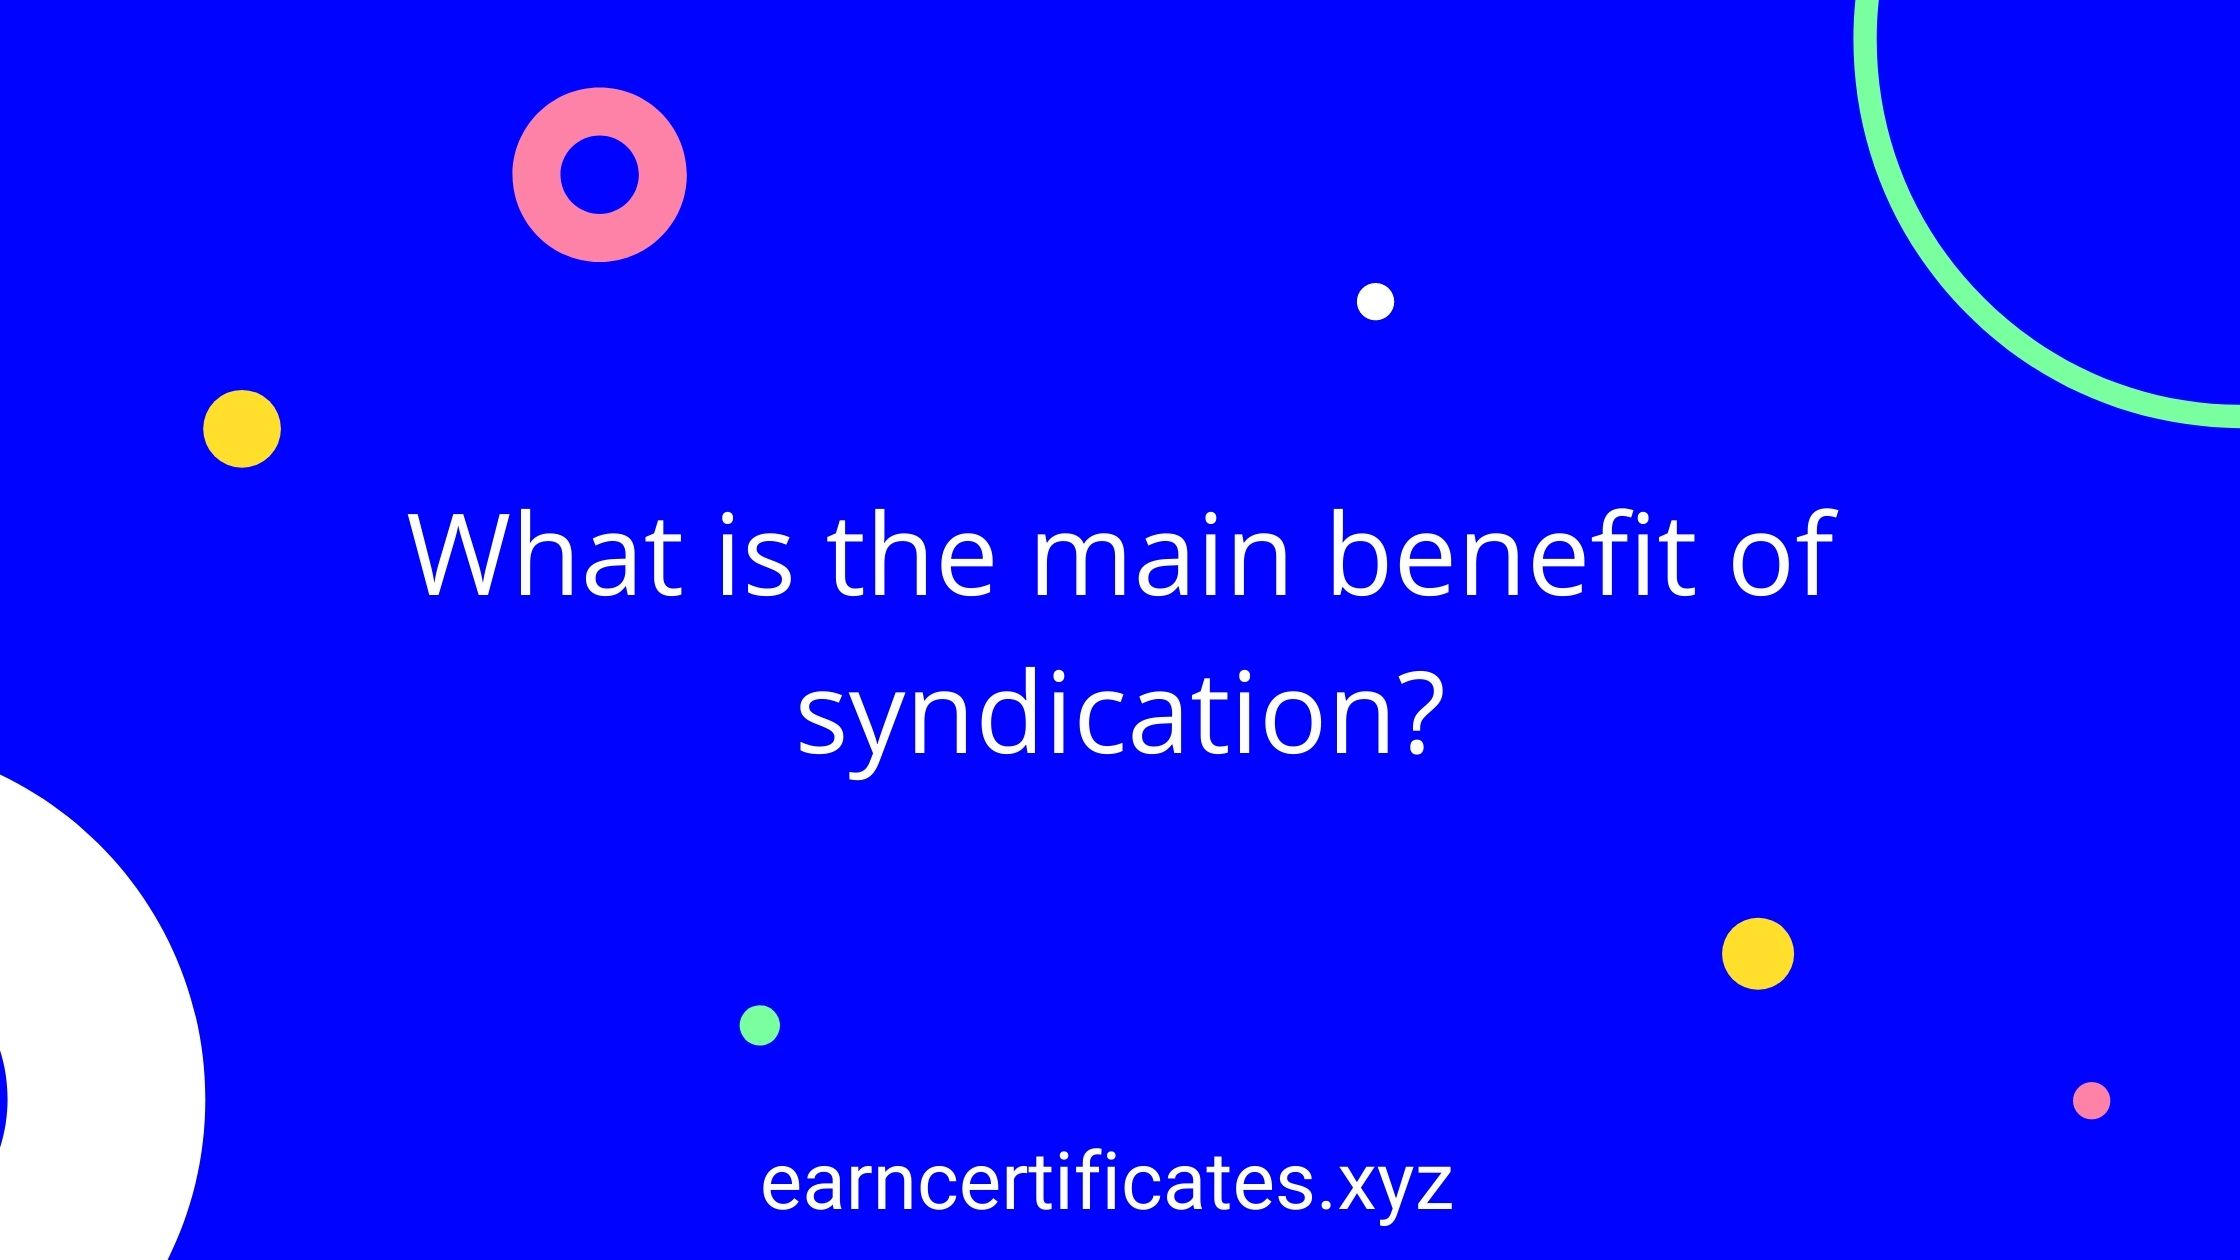 What is the main benefit of syndication?